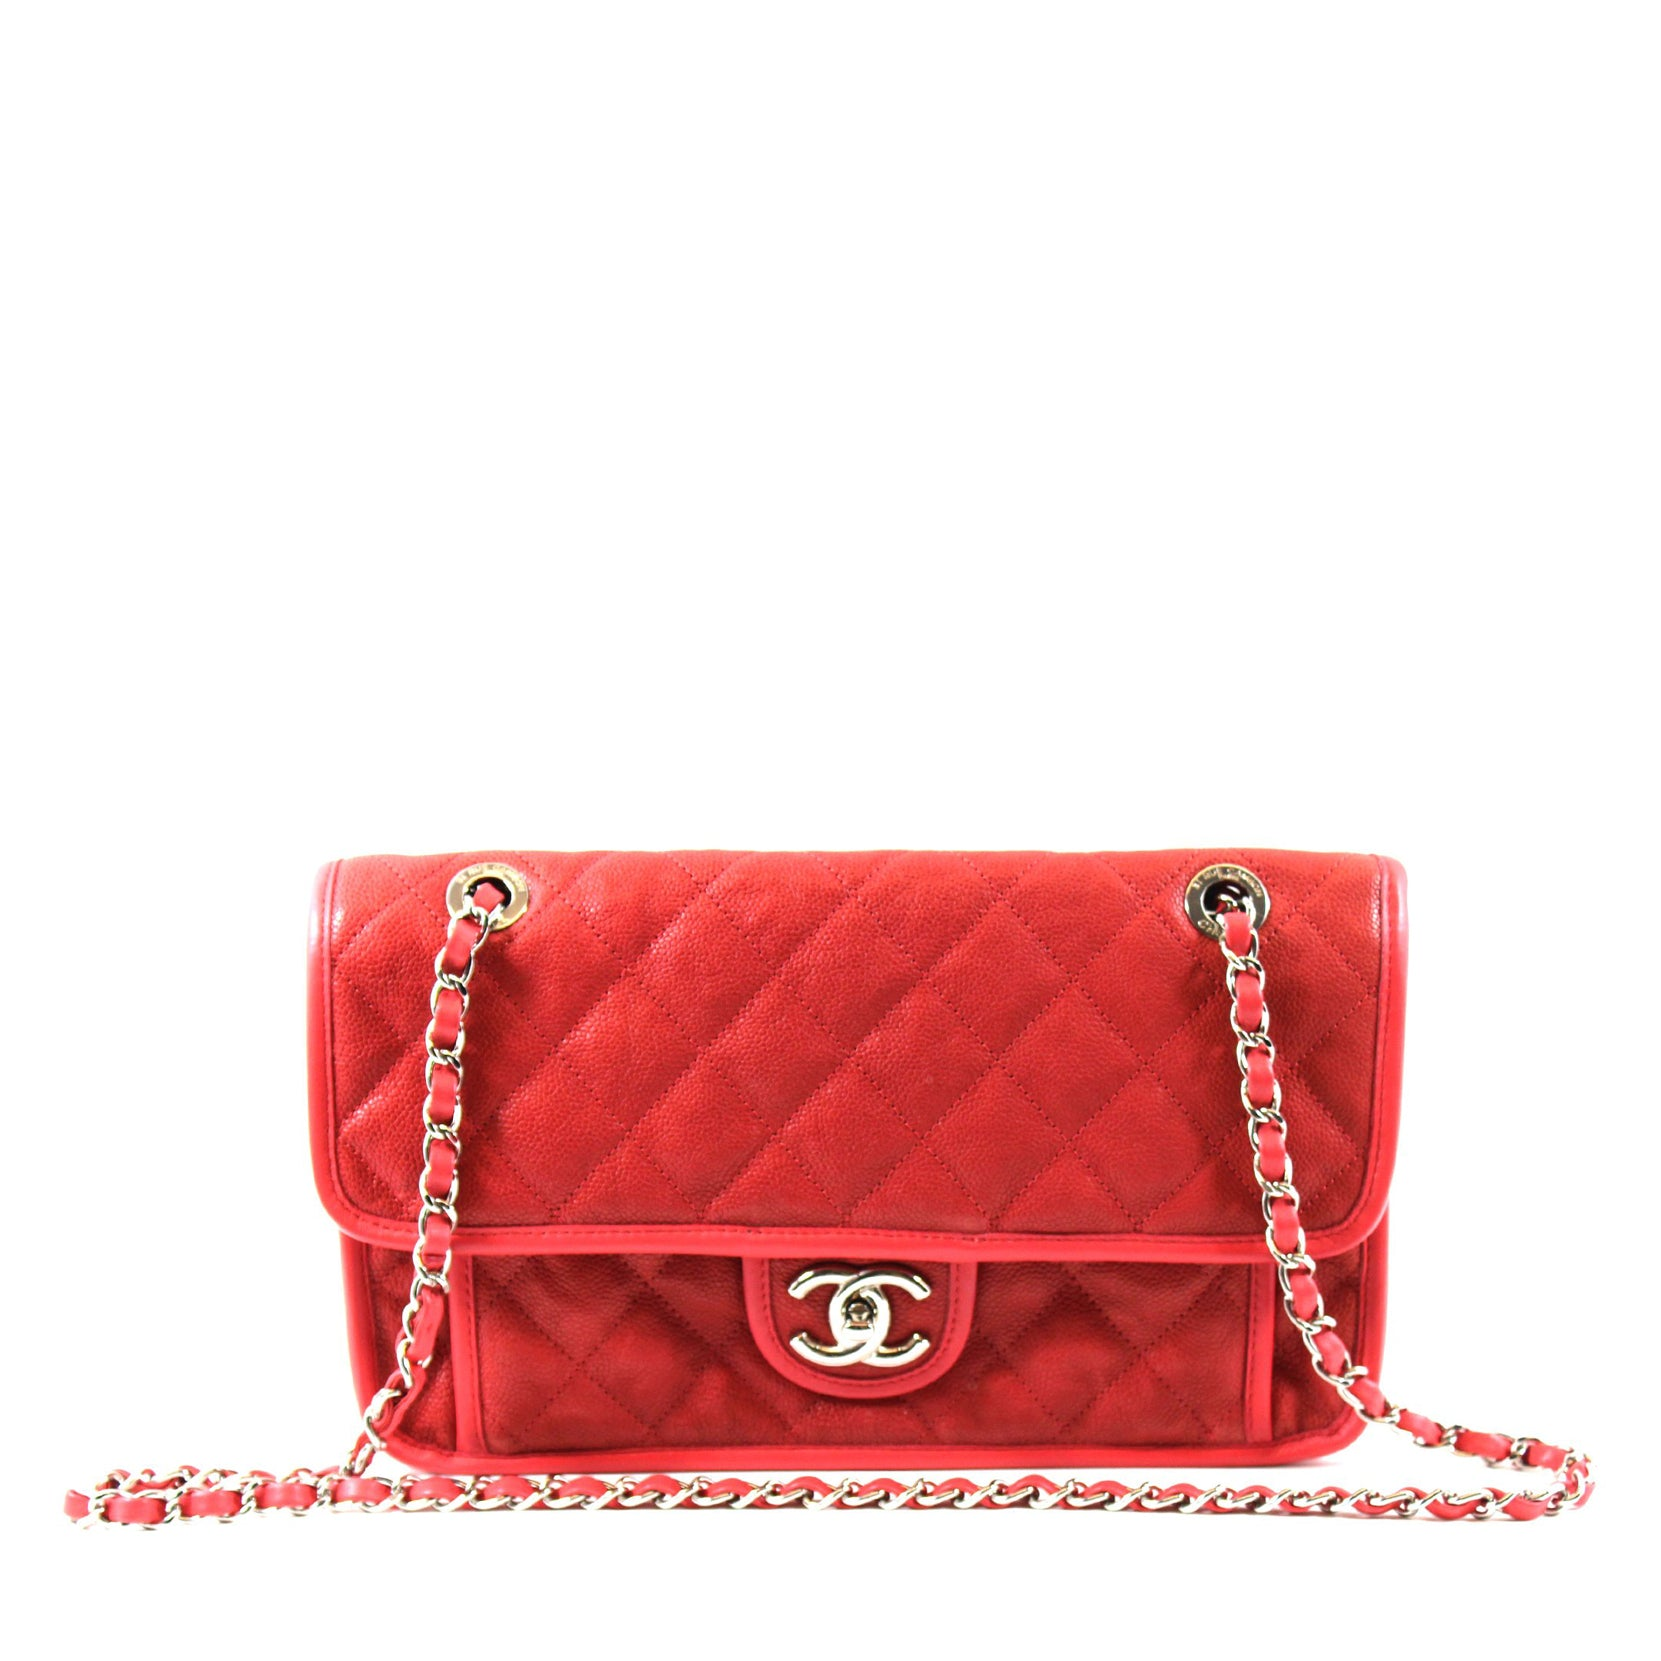 Chanel French Riviera Red Quilted Caviar Leather Medium Flap Bag ... : chanel red quilted bag - Adamdwight.com